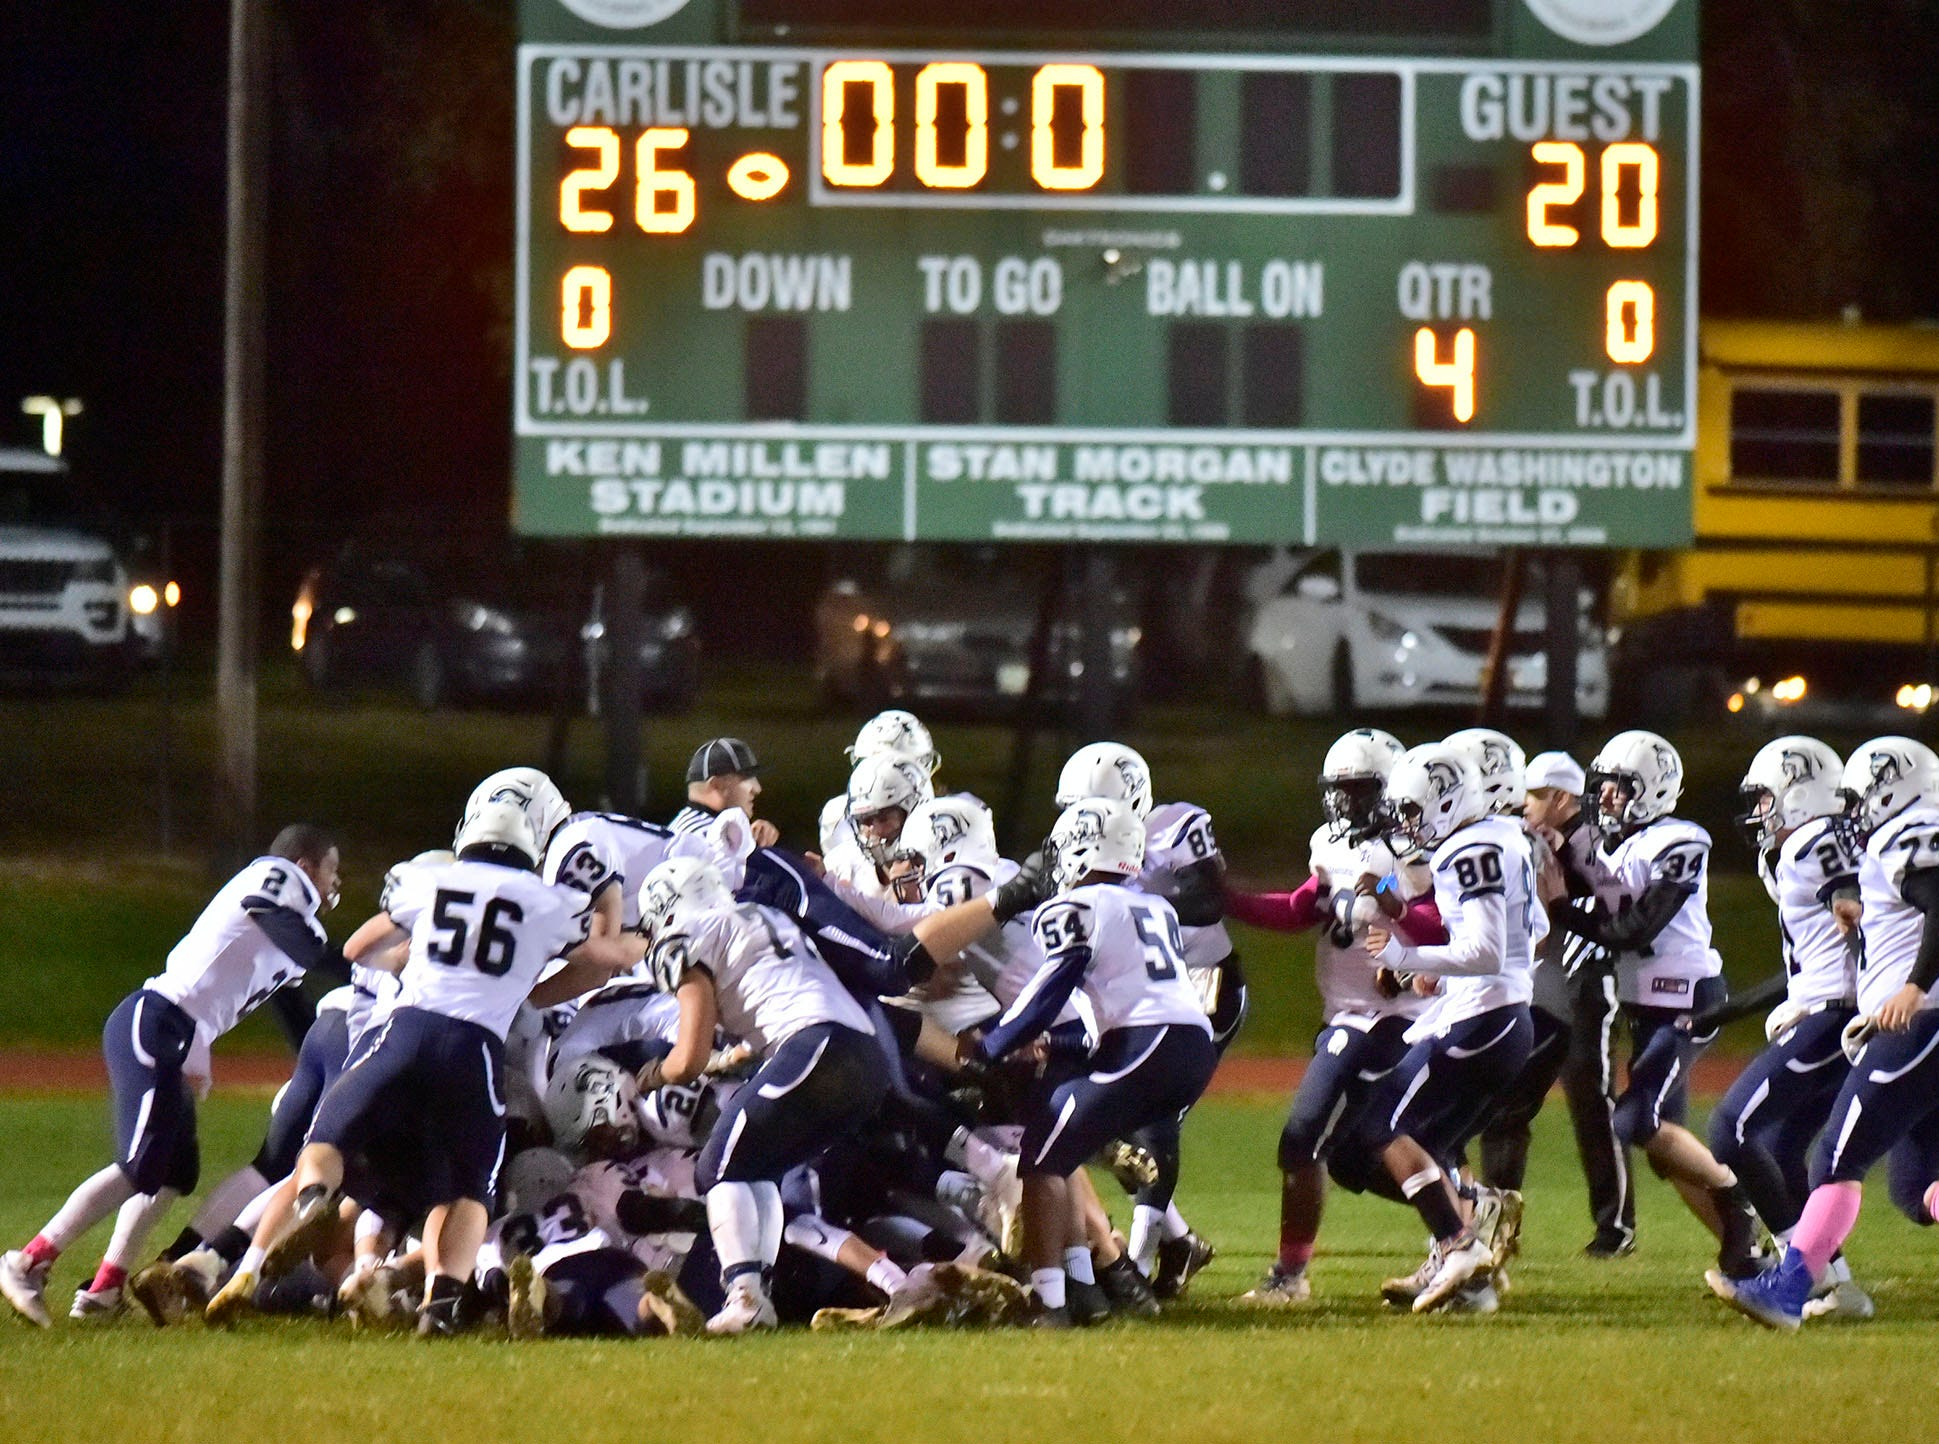 Chambersburg celebrates a spectacular finish to their regular season during a 26-20 Trojan victory over Carlisle on Friday, October 26, 2018.